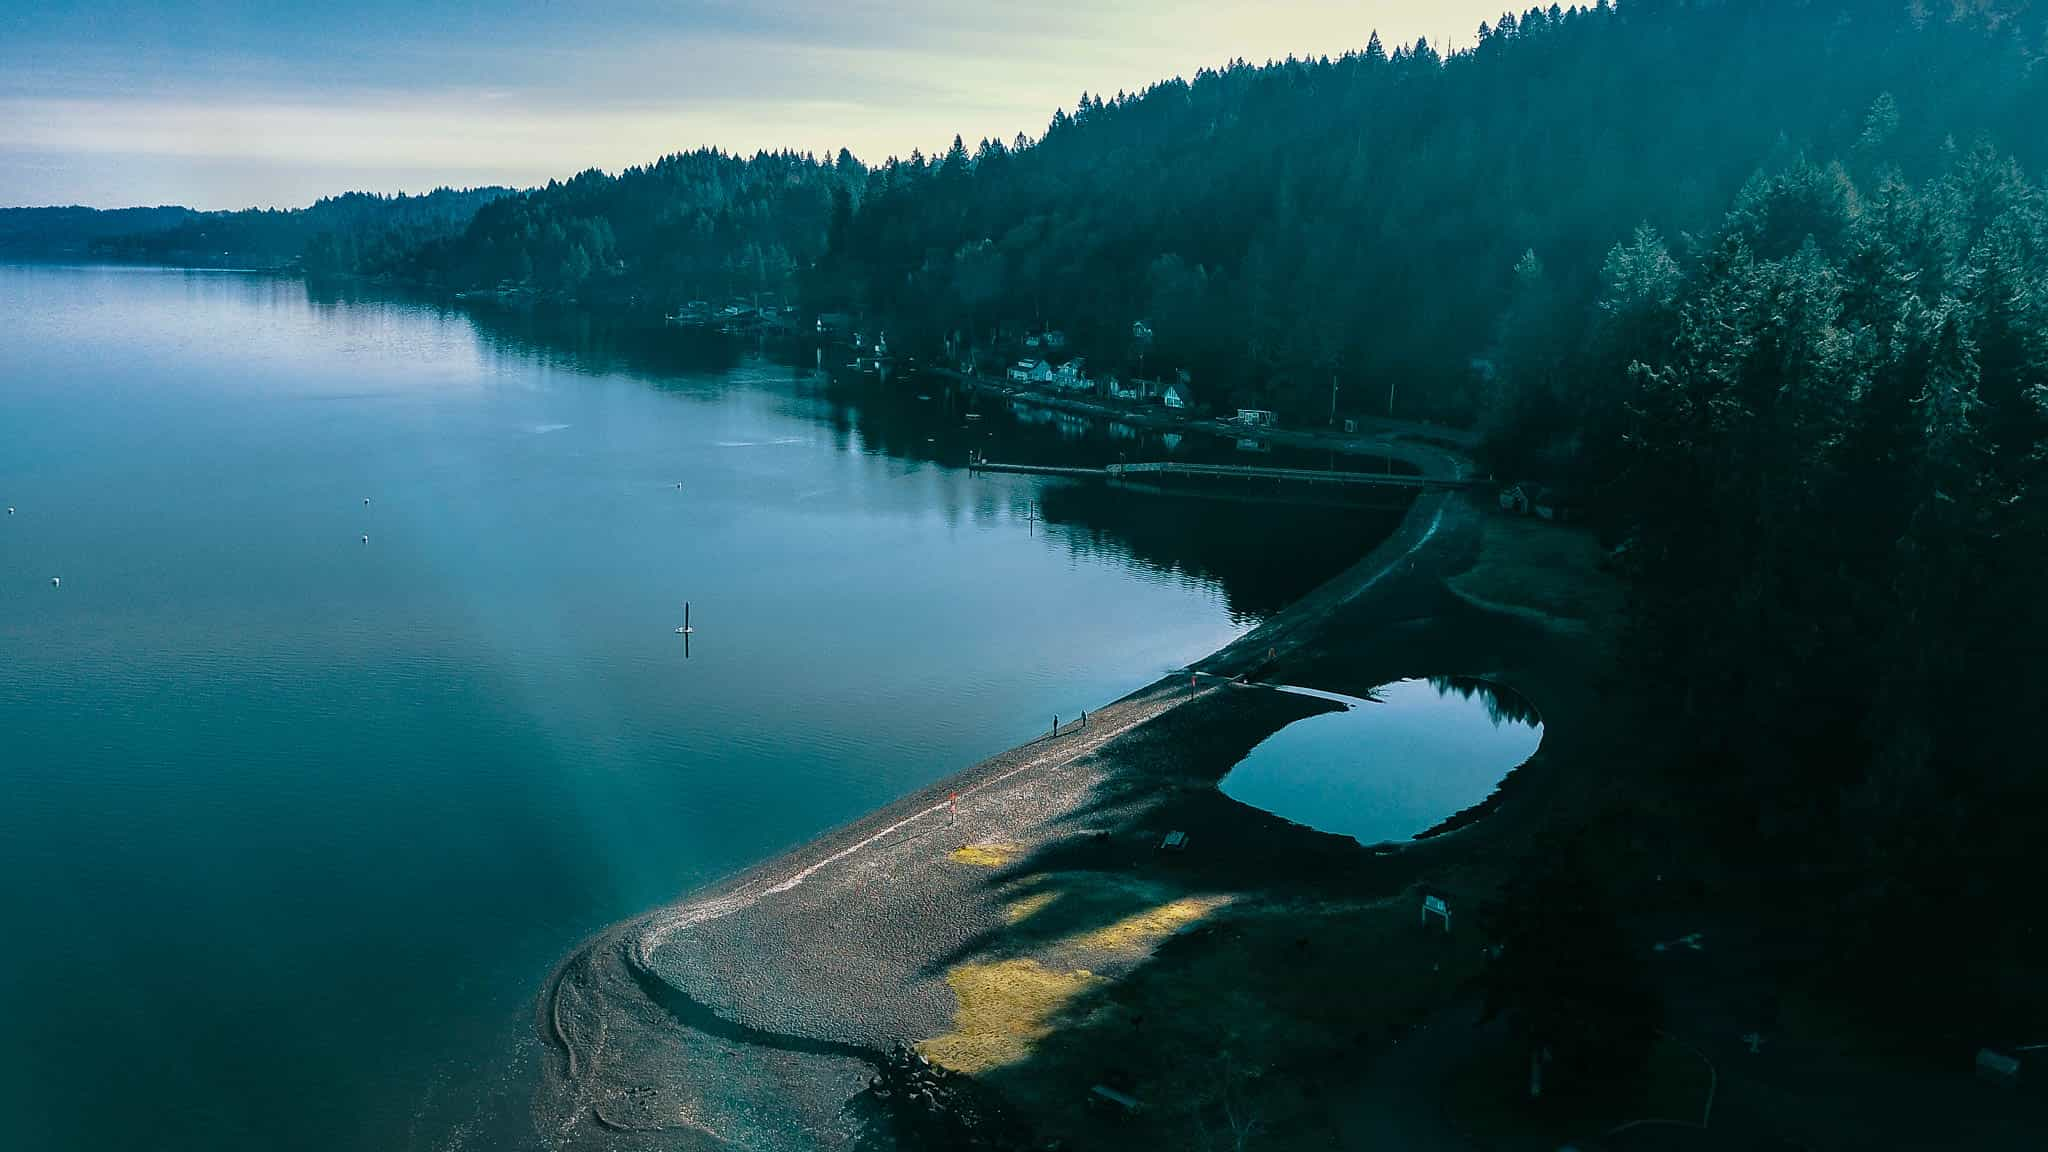 Twanoh State Park on the shores of Hood Canal.